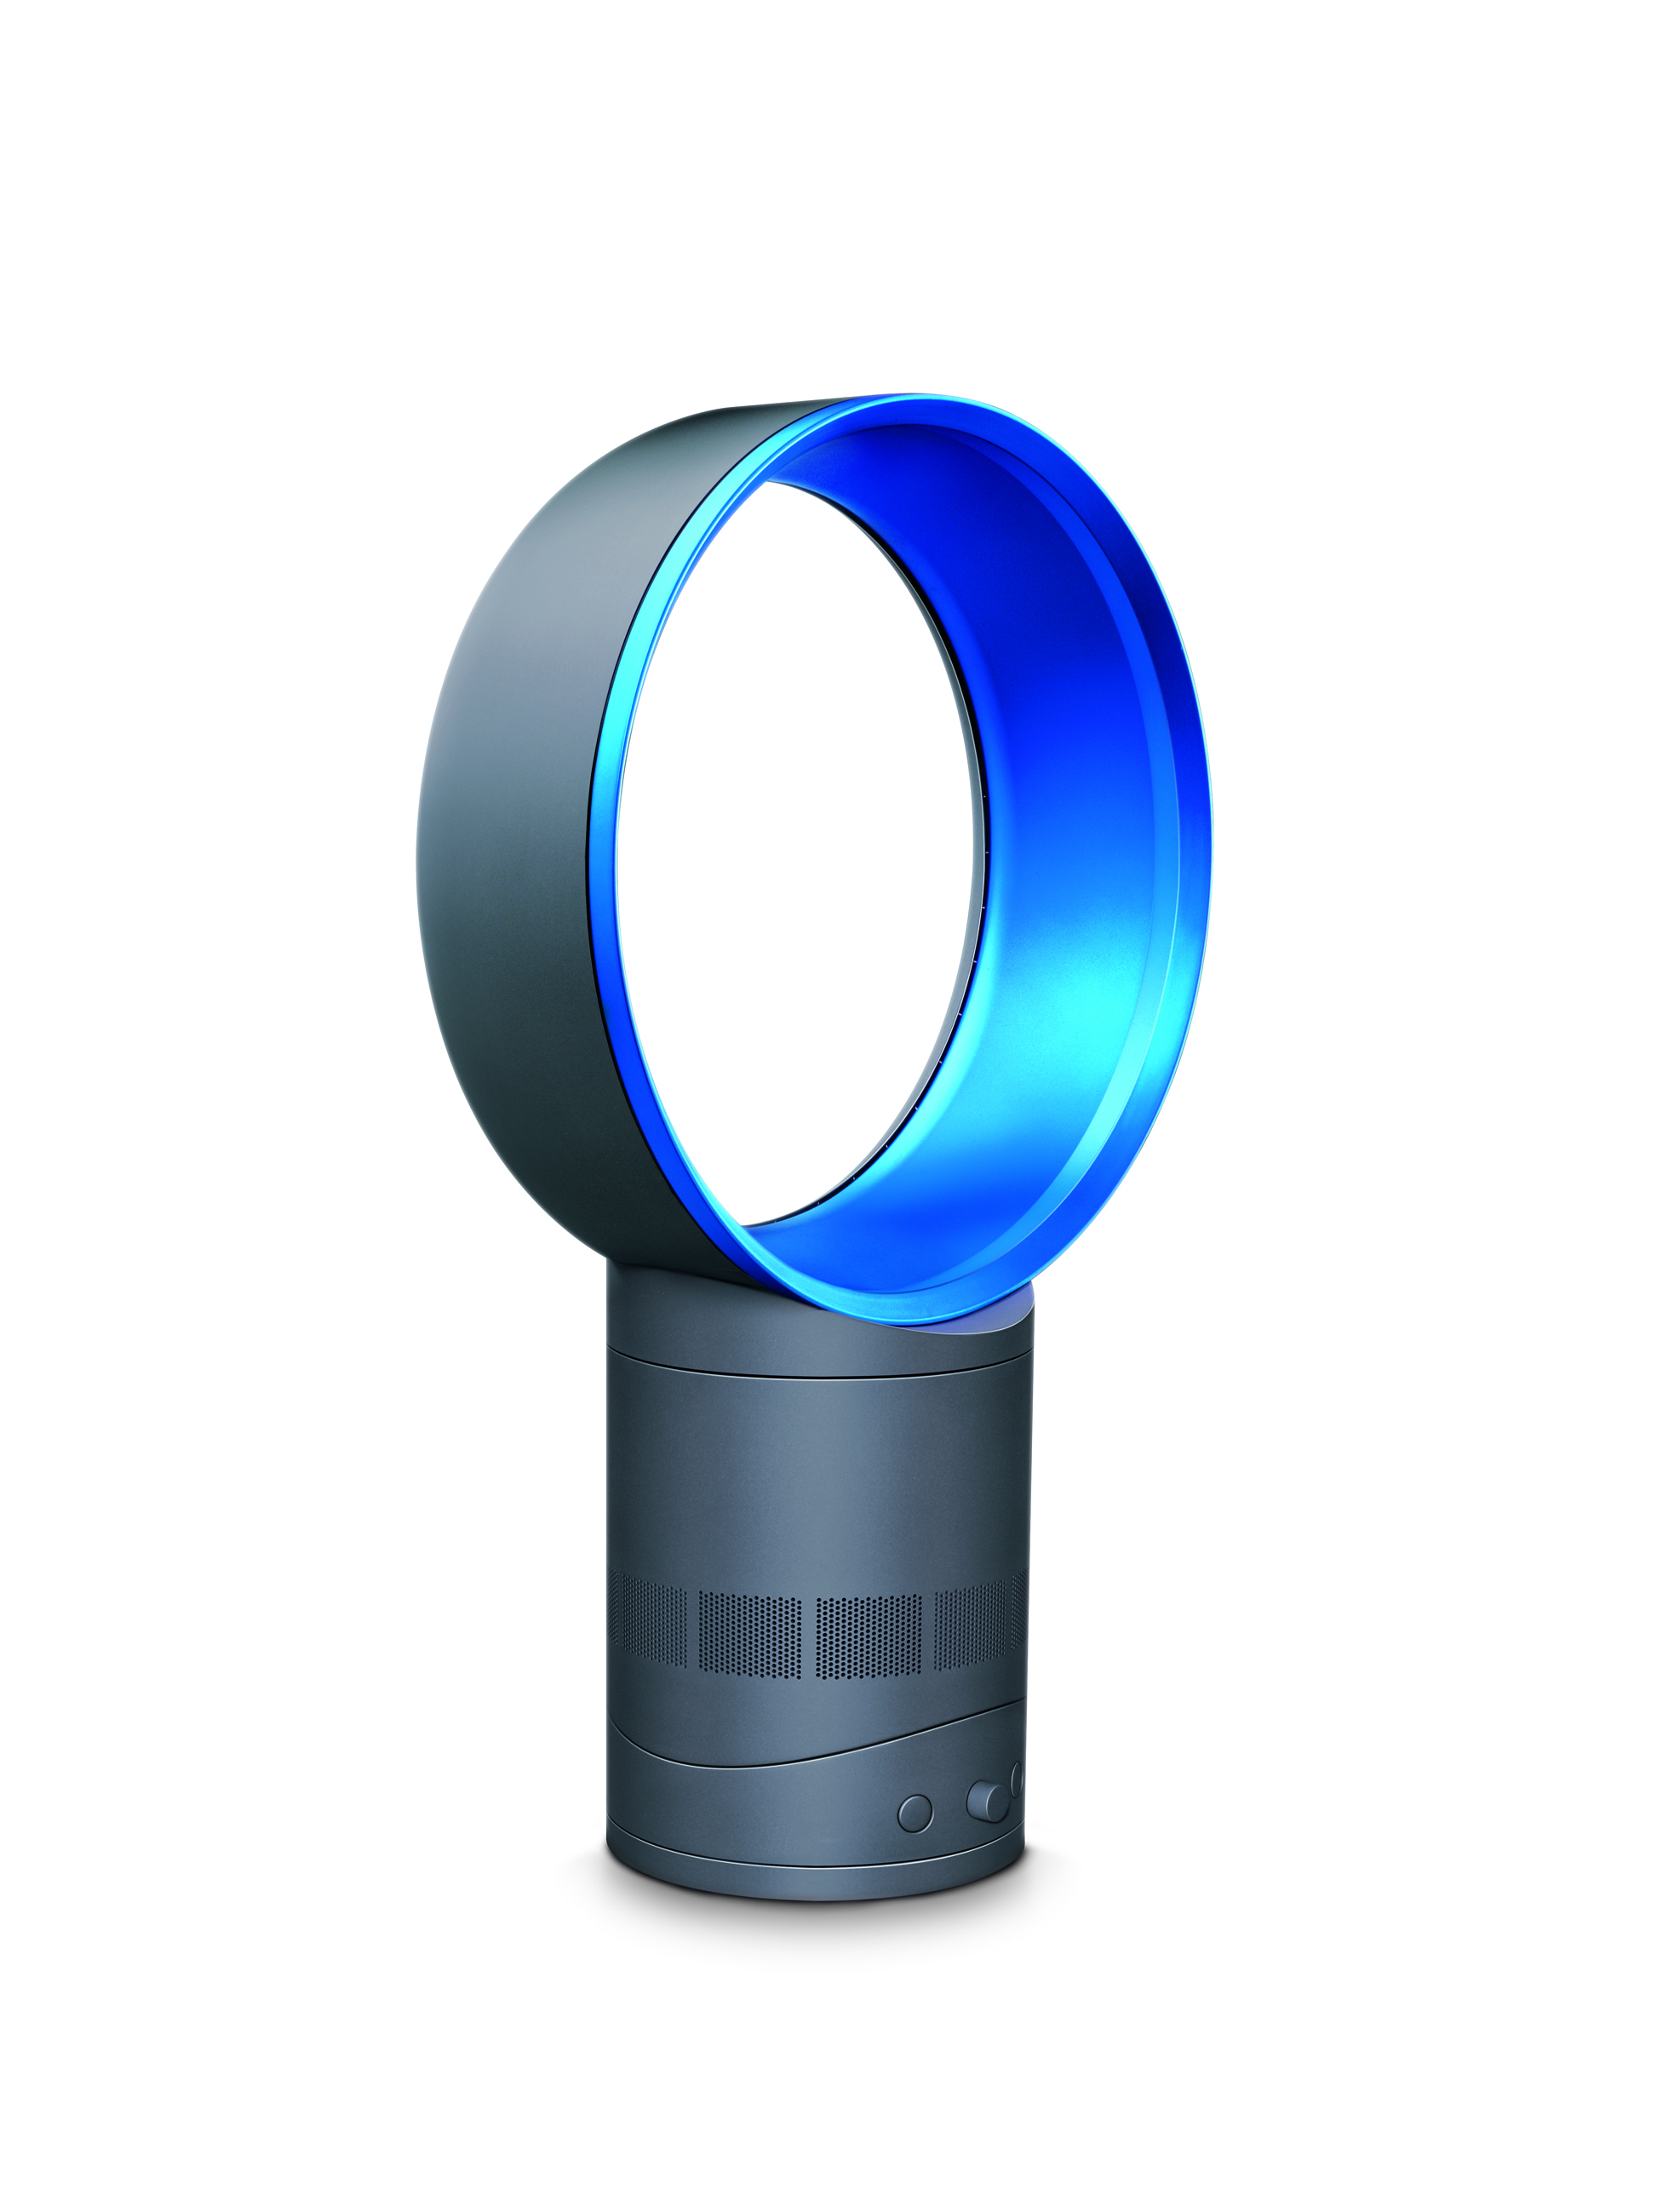 Must… resist… obvious Dyson vacuum/fan joke… | TechCrunch